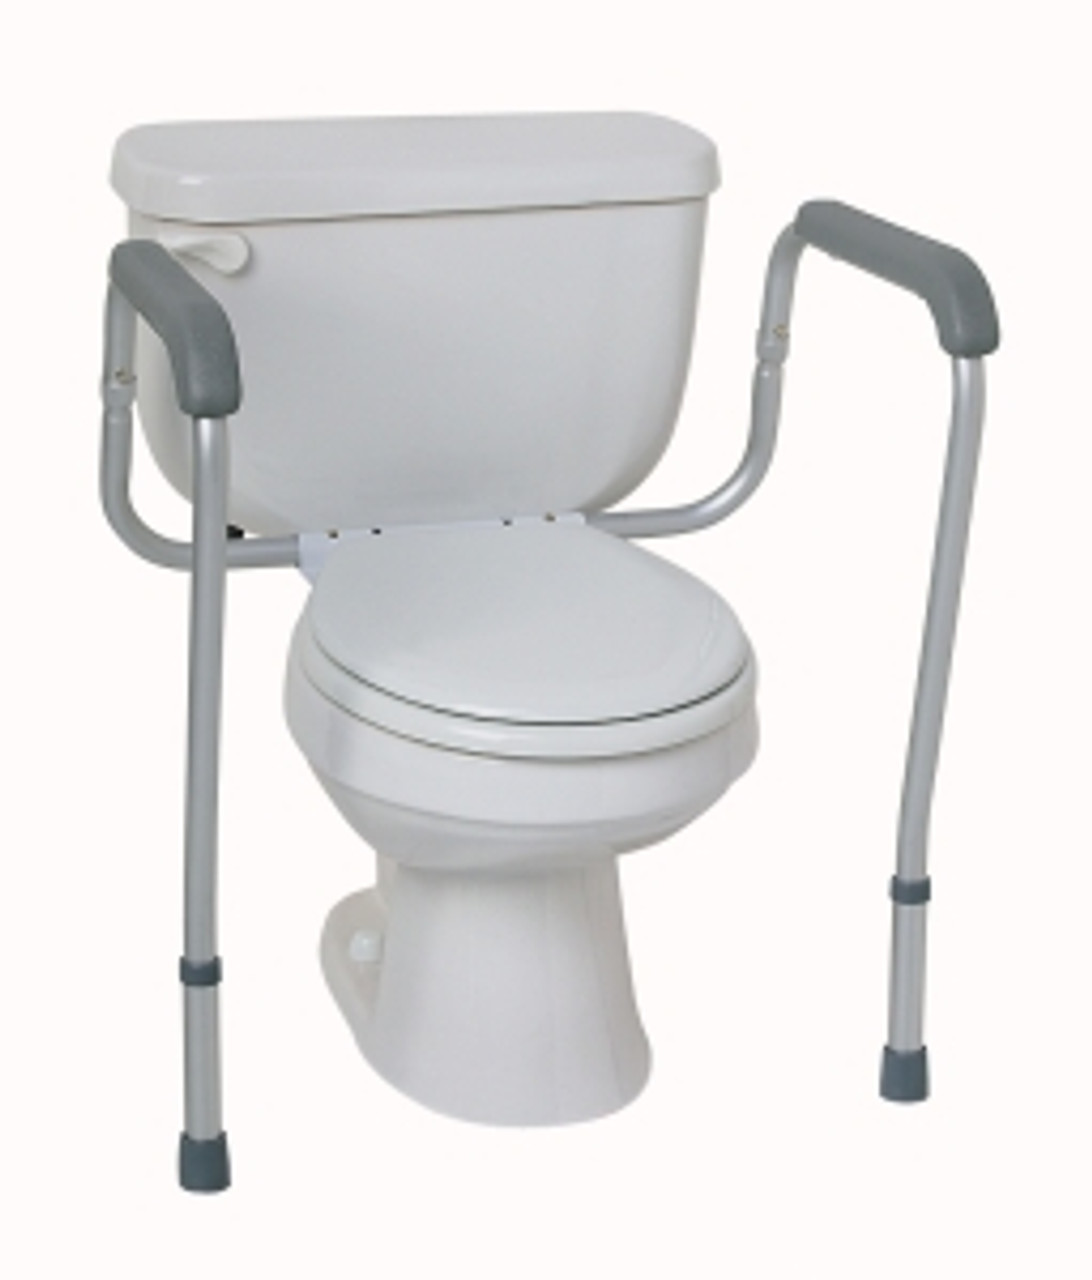 Incredible Medline Toilet Safety Rails Ibusinesslaw Wood Chair Design Ideas Ibusinesslaworg